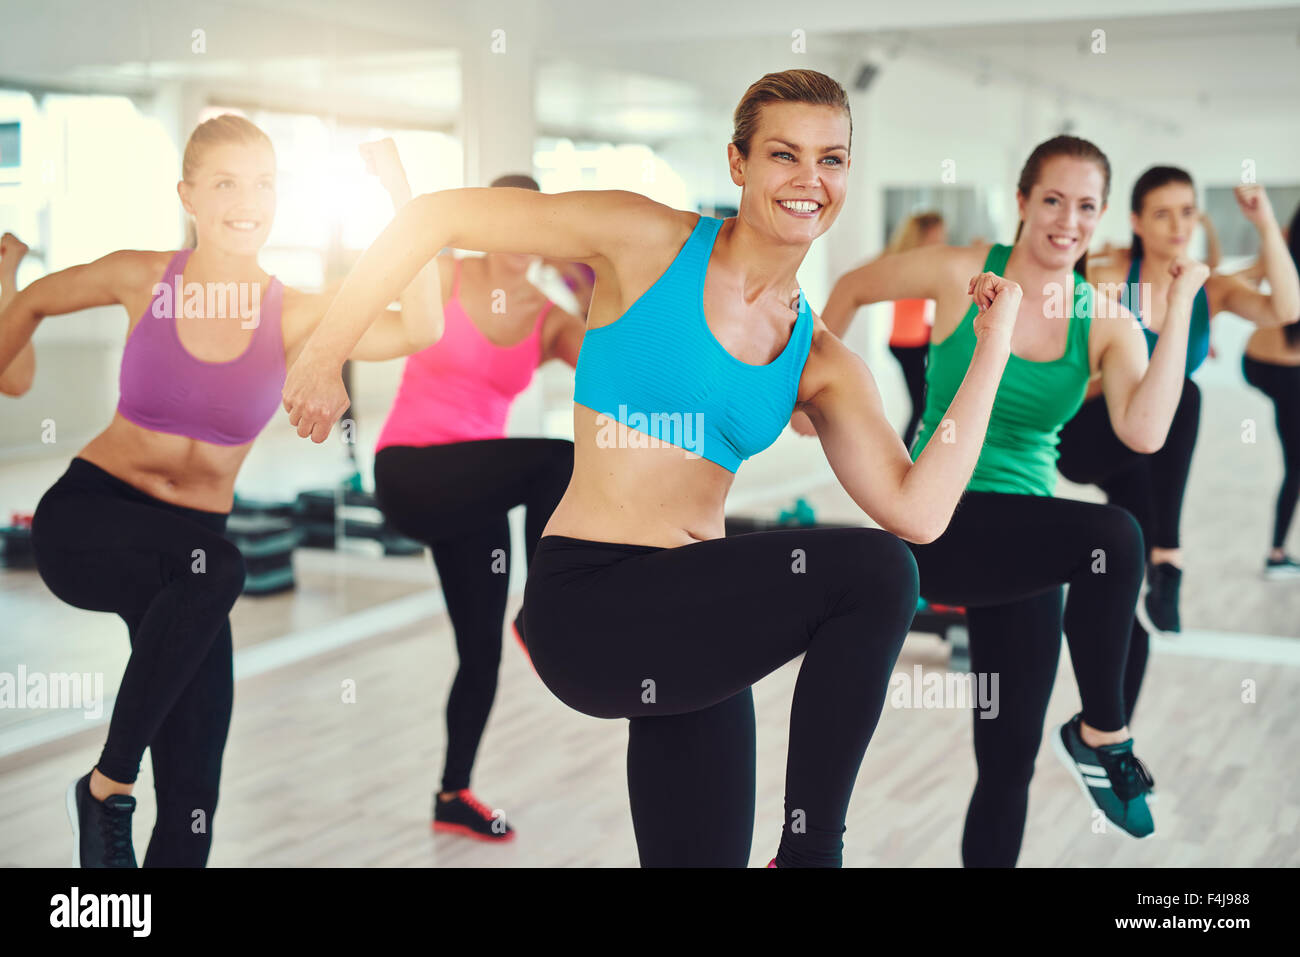 fitness, sport, training, aerobics and people concept - group of people working out in gym - Stock Image